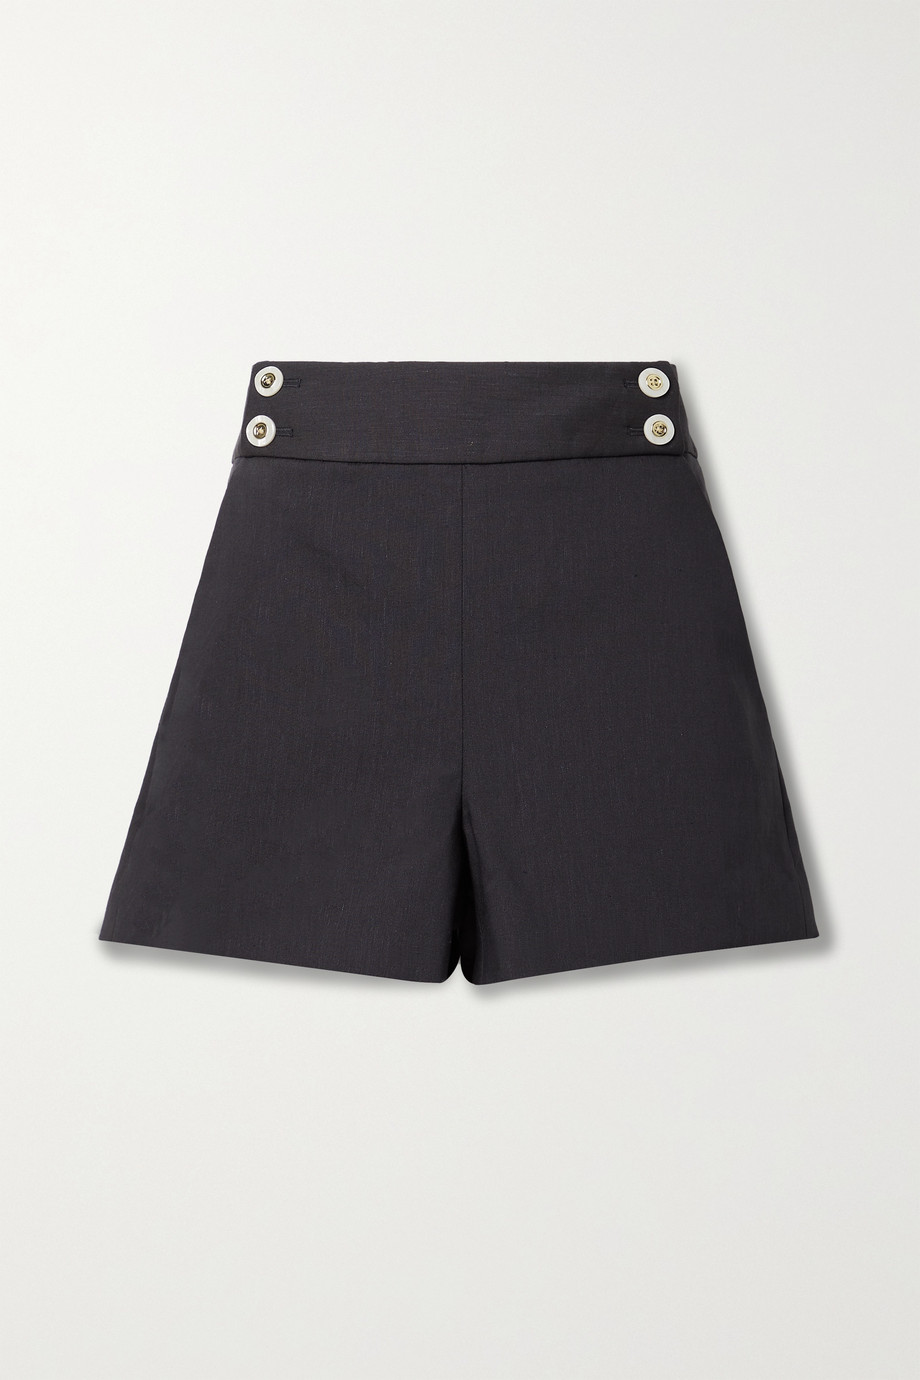 Veronica Beard Kimm button-embellished linen-blend shorts